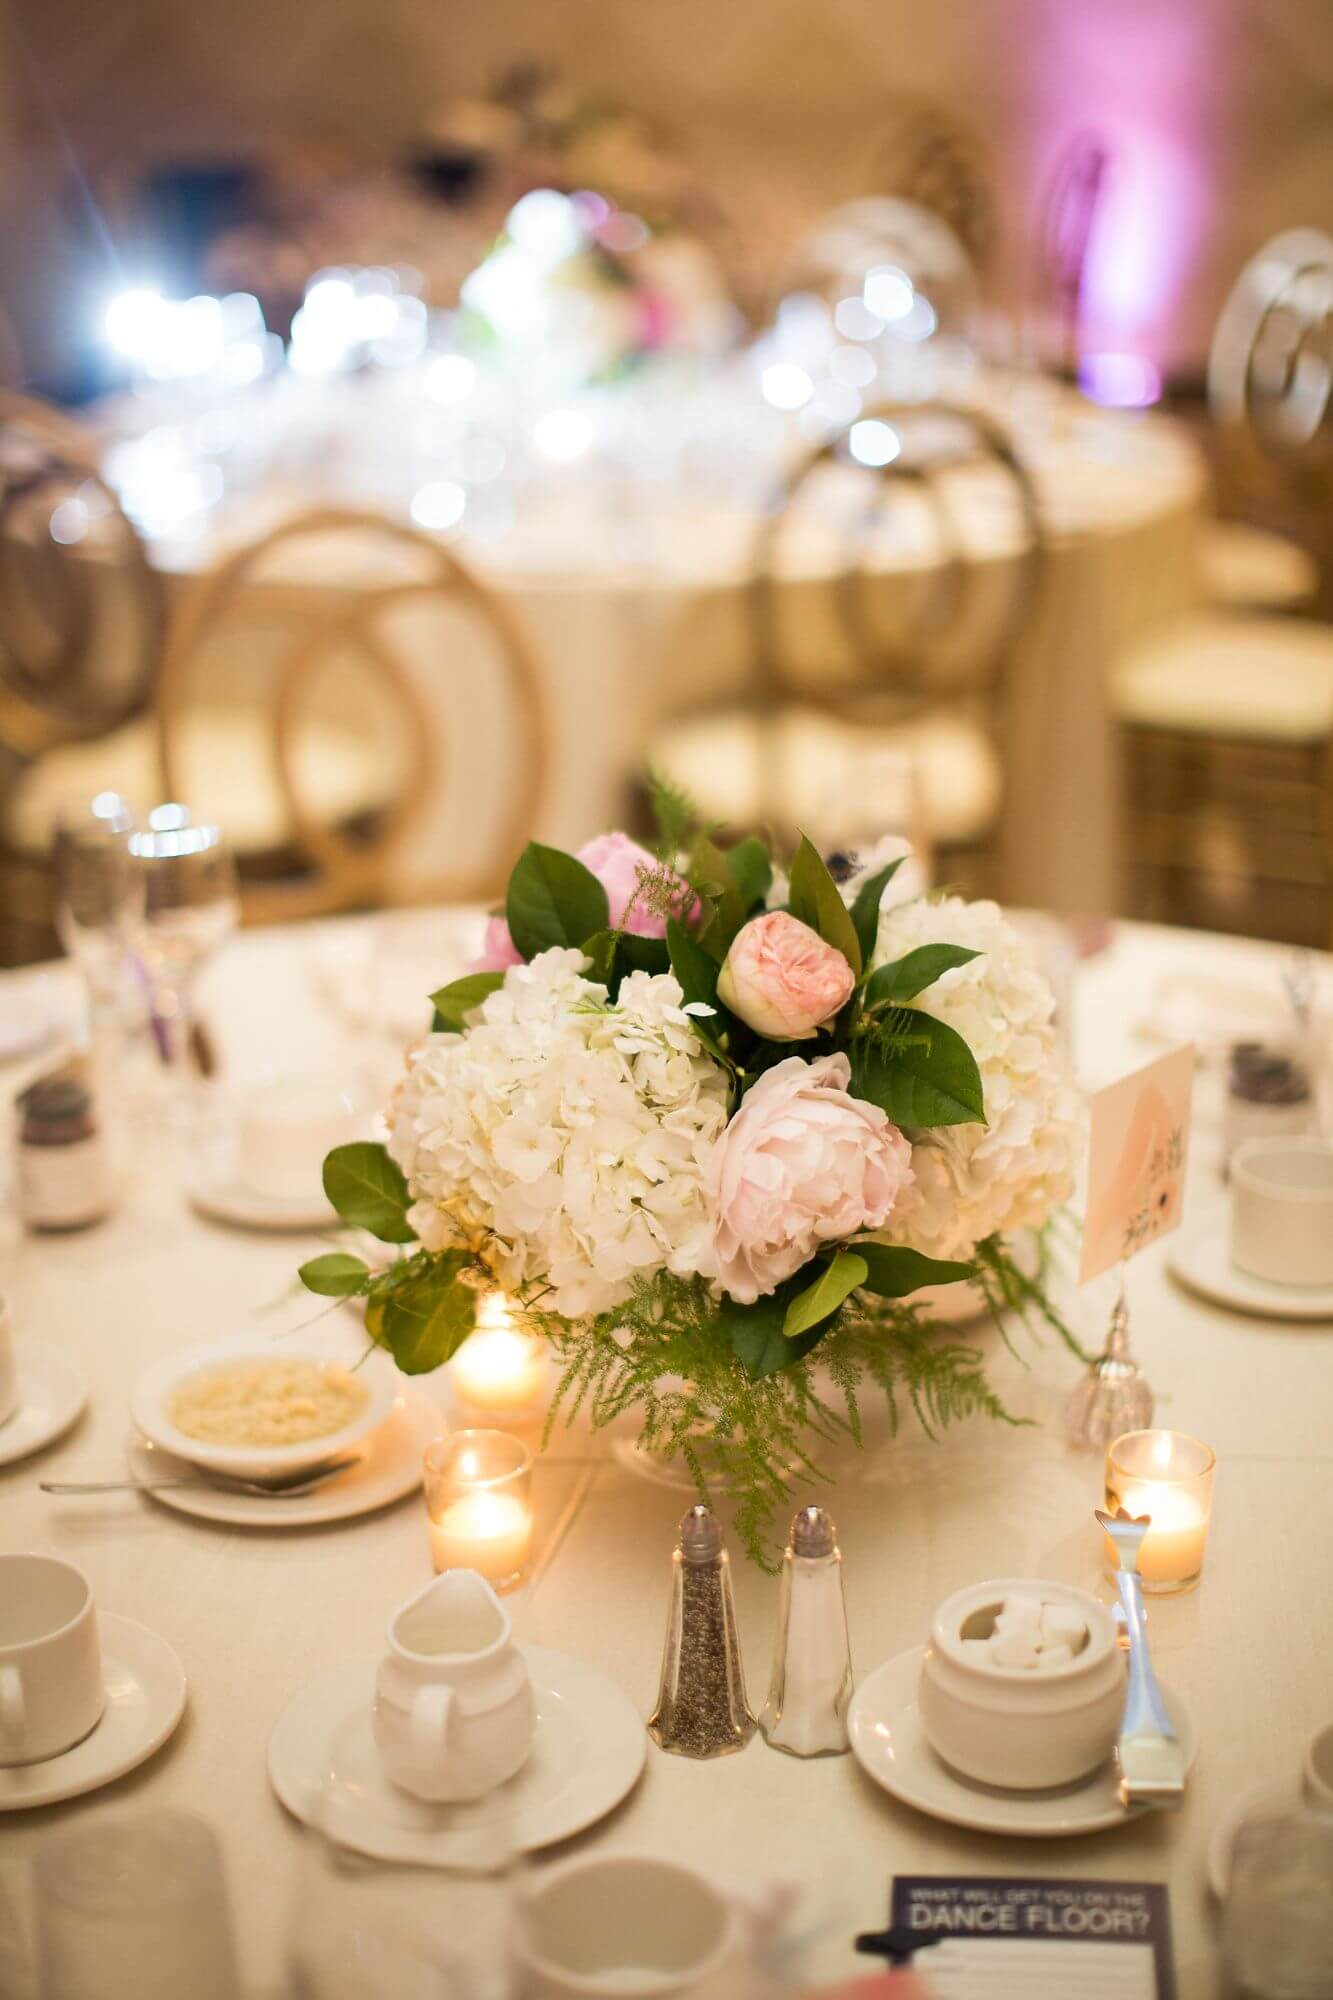 Banquet table with white and blush floral centrepiece - Champagne, Blush and Gold Niagara Wedding - Historia Wedding and Event Planning